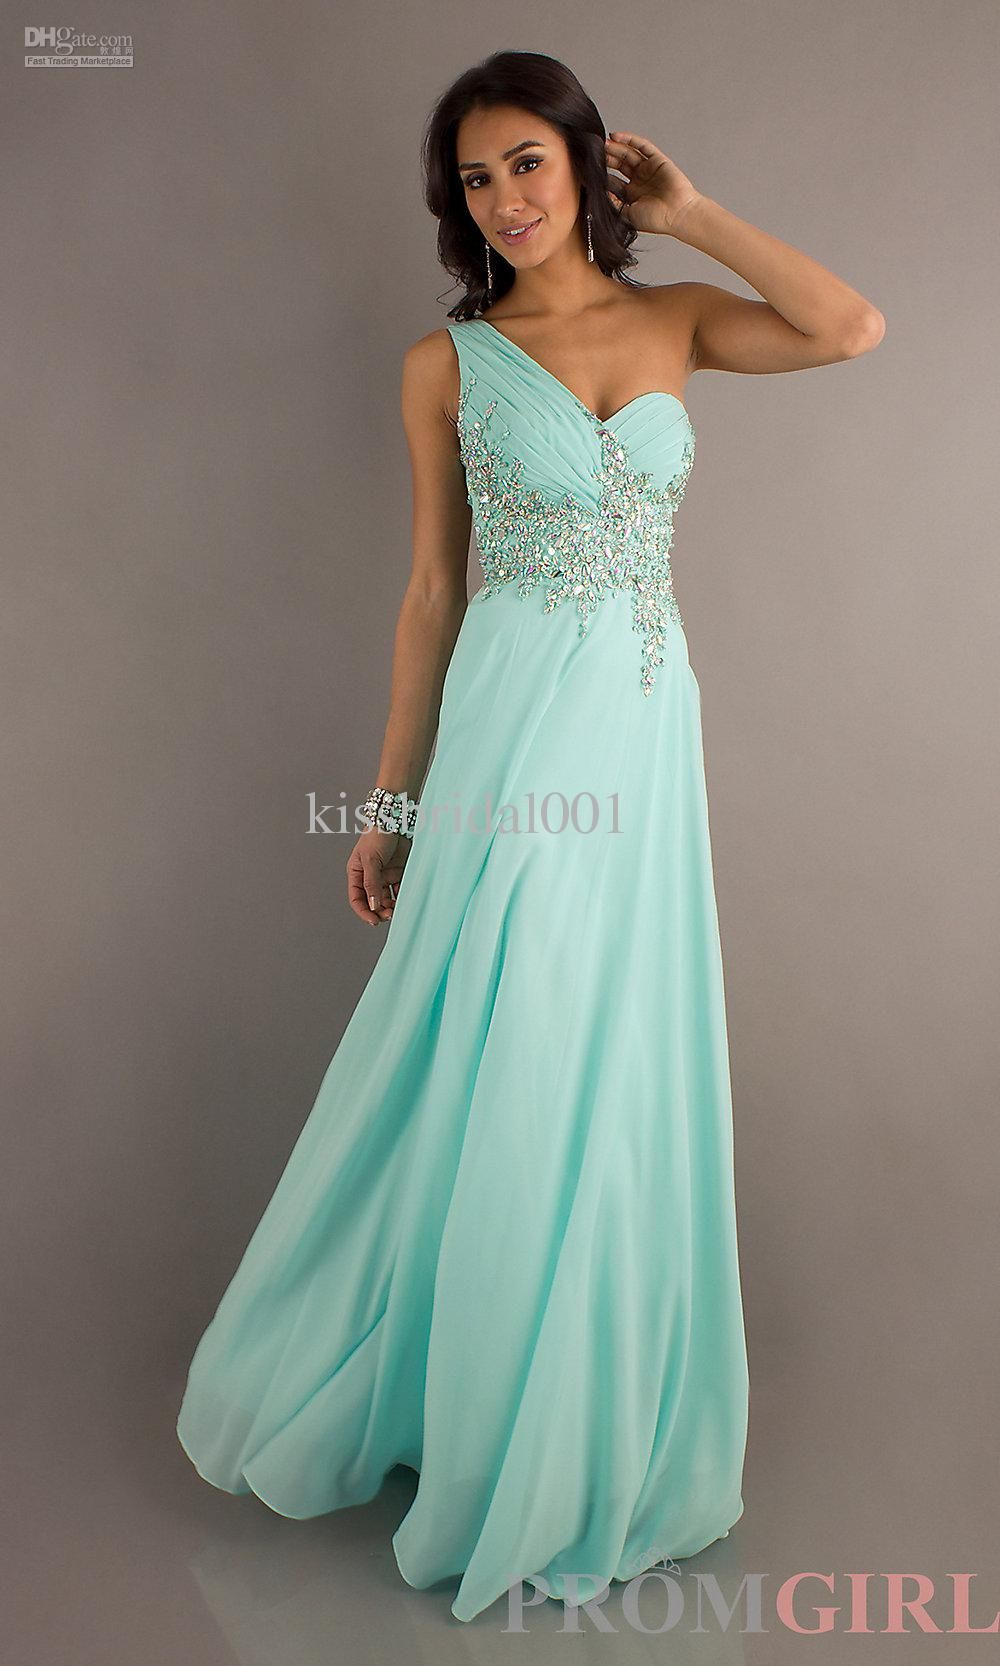 Wholesale Mint Green Prom Dresses - Buy One Shoulder Asymmetric ...